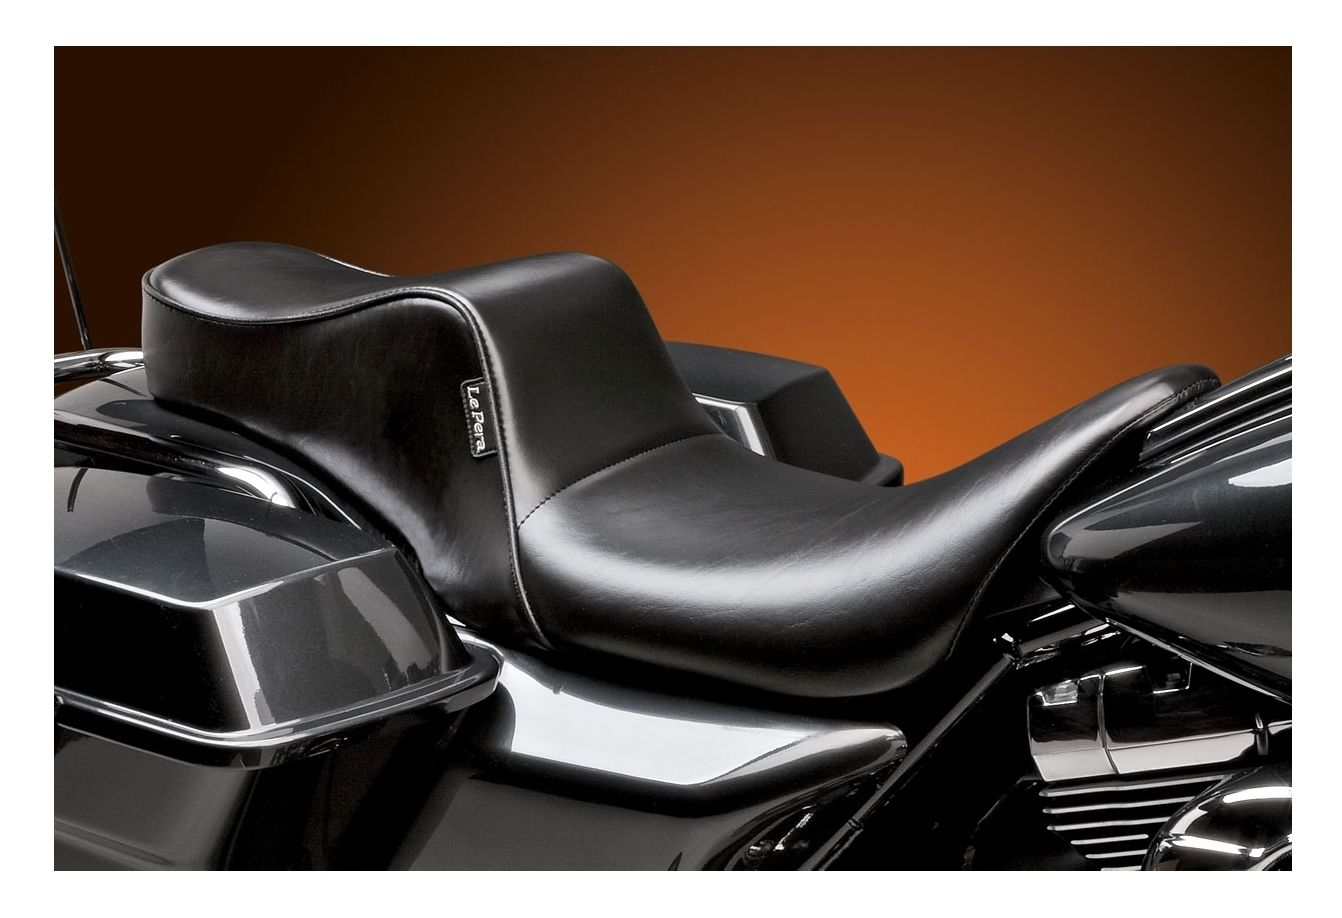 Le pera cherokee seat for harley 10 off for Garage seat le bouscat